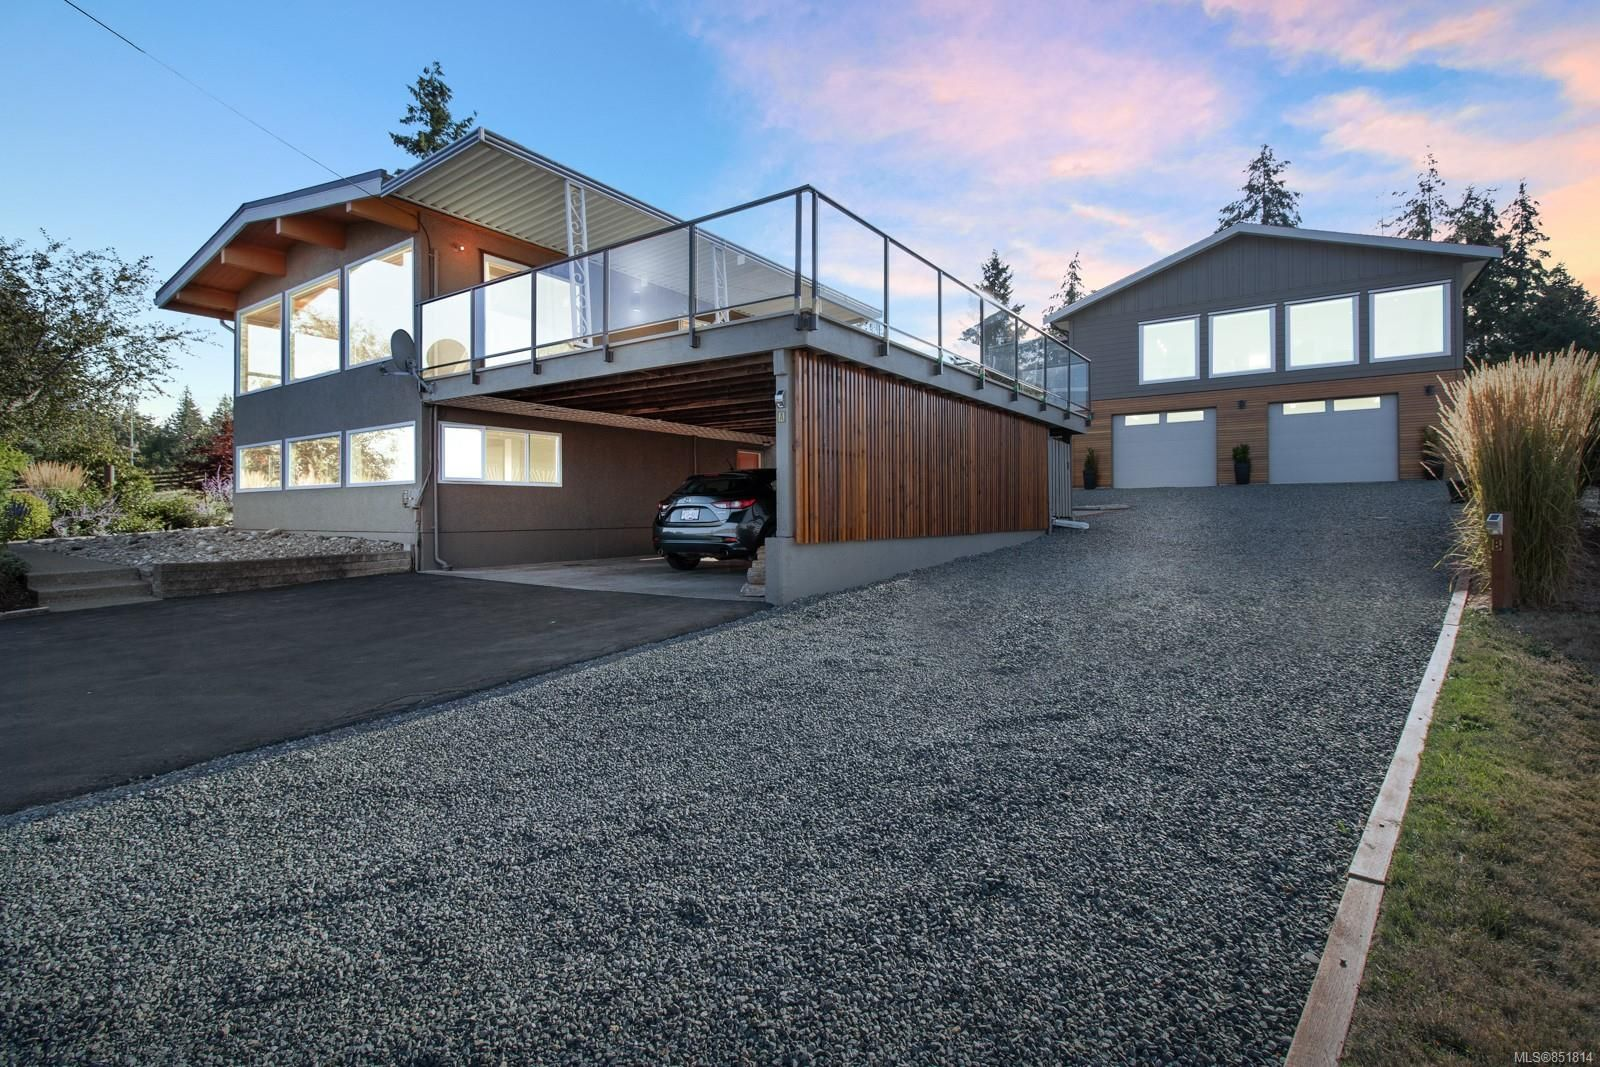 Photo 2: Photos: 191 Muschamp Rd in : CV Union Bay/Fanny Bay House for sale (Comox Valley)  : MLS®# 851814